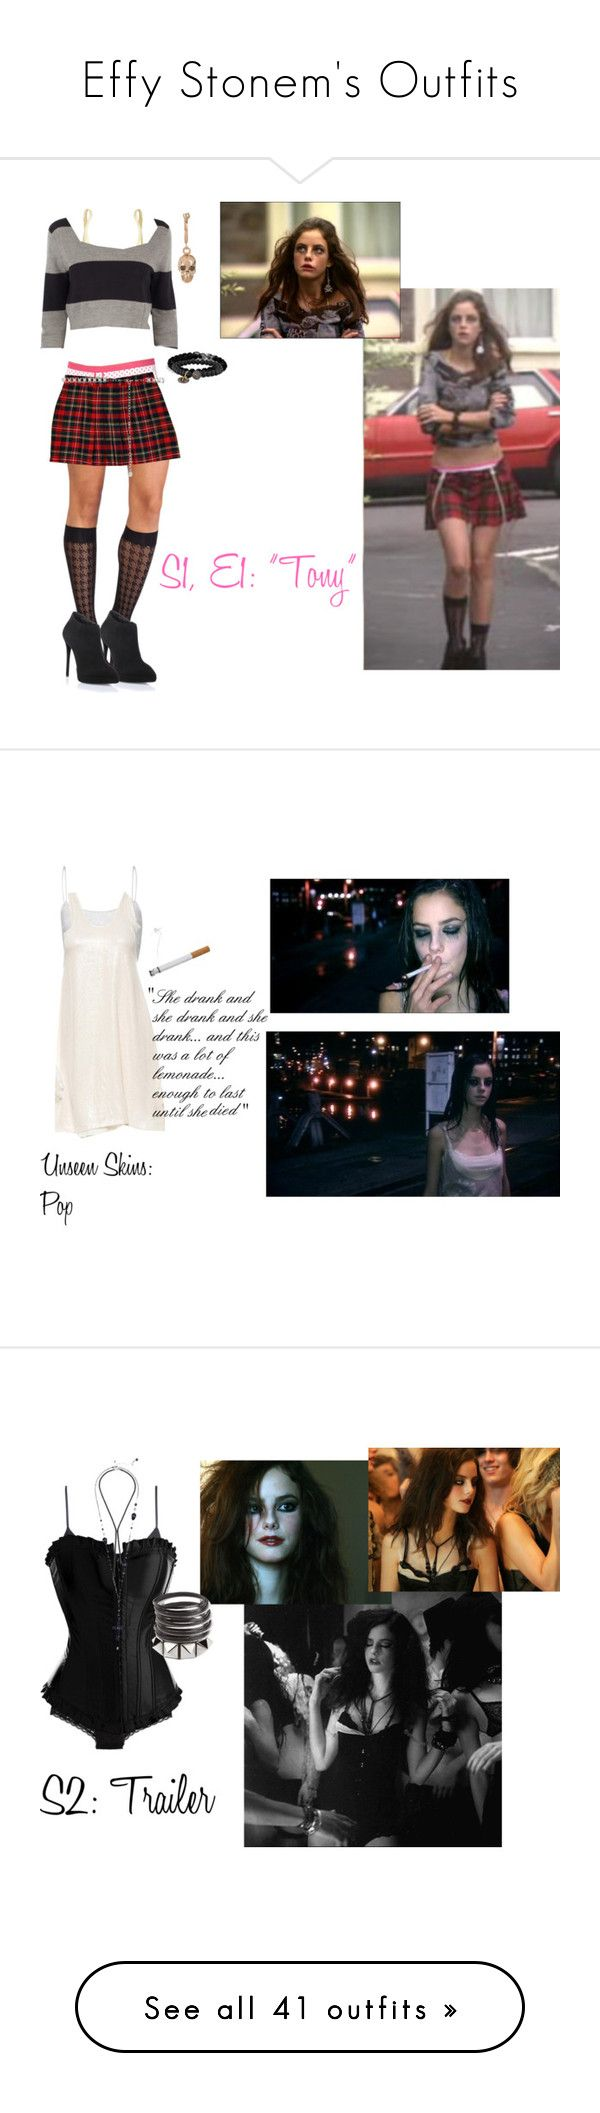 """Effy Stonem's Outfits"" by breakfast-at-tiffanysss ❤ liked on Polyvore featuring Wolford, Mimi Holliday by Damaris, Debenhams, Effy Jewelry, A.L.C., David Yurman, Ileana Makri, Forever New, Giuseppe Zanotti and Sara Weinstock"